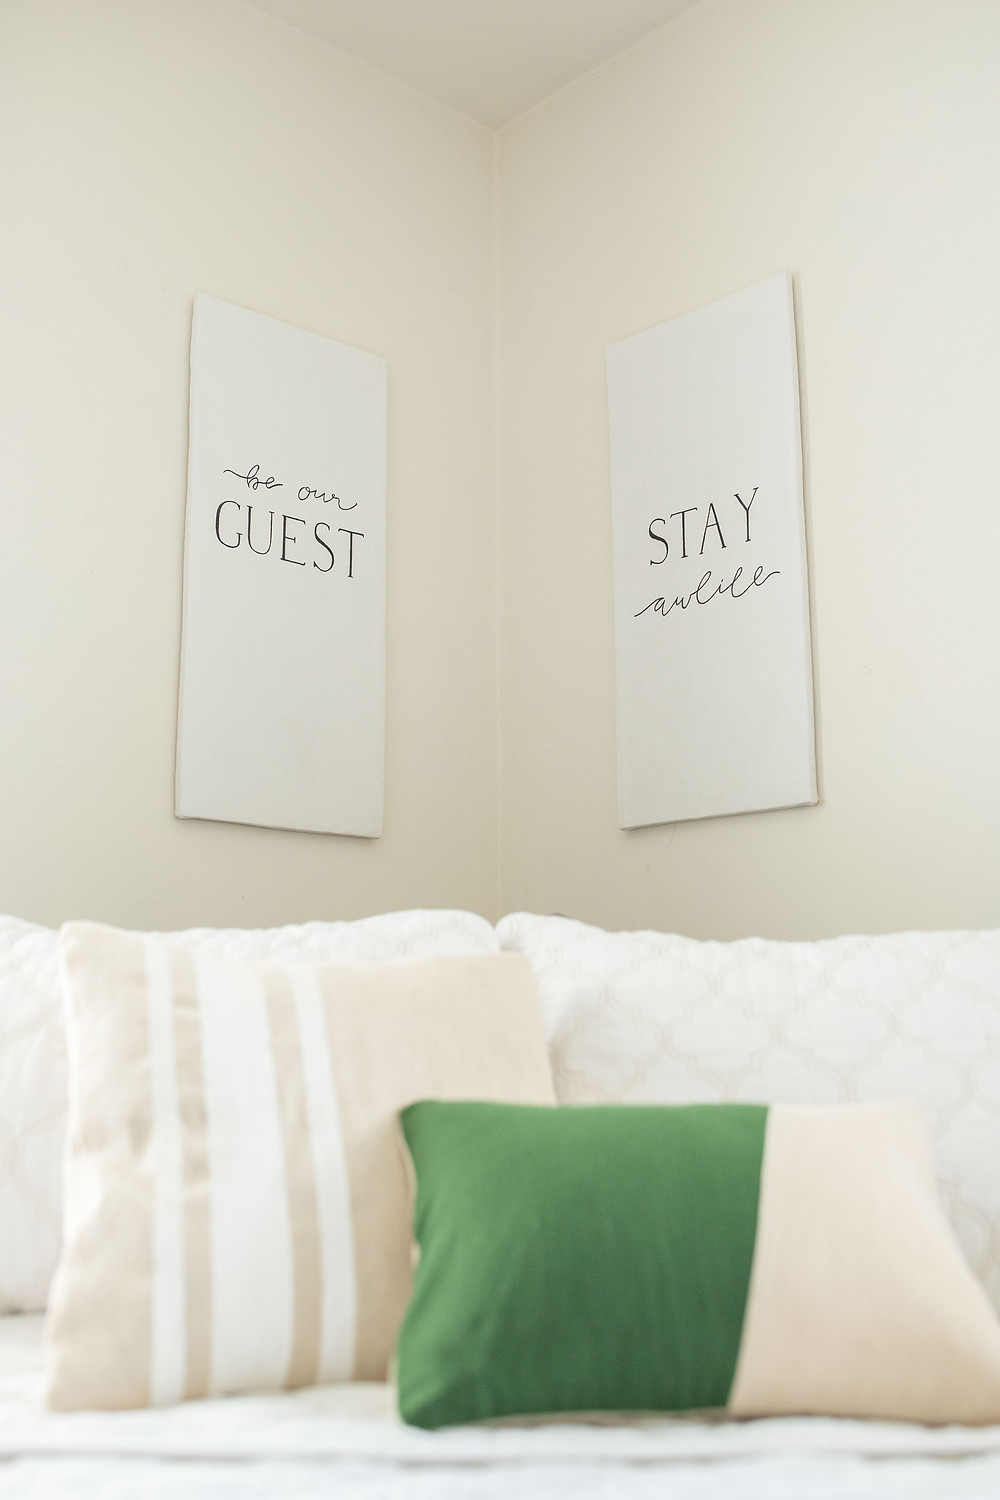 Home bedroom decorations with green accents and white signs